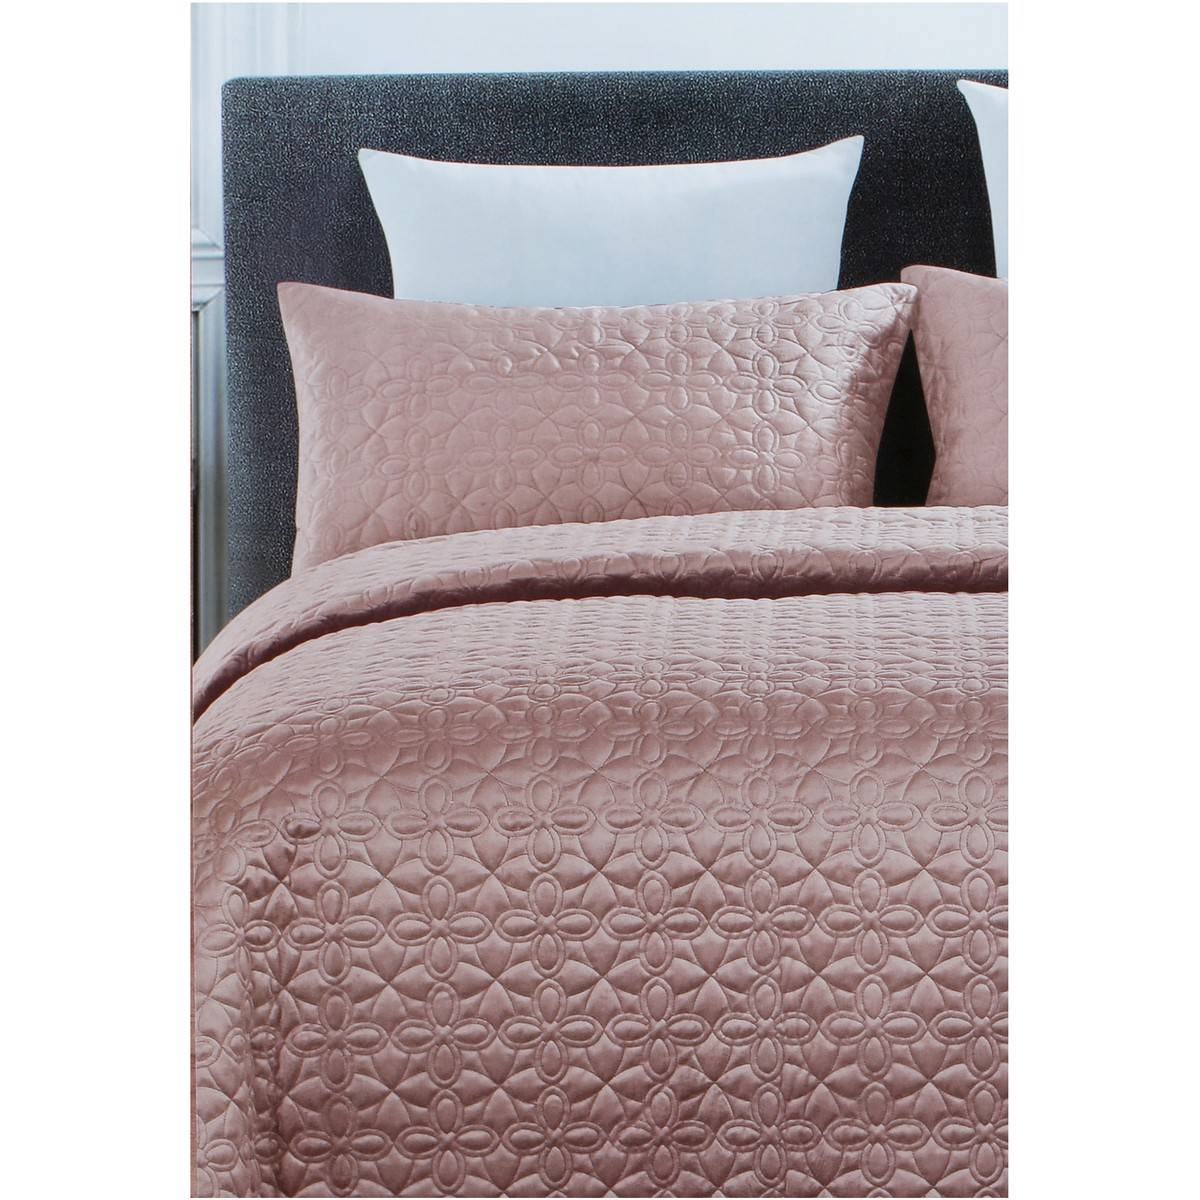 Big W Queen Quilt Covers House And Home Faux Velvet Coverlet Set Blush Queen Big W